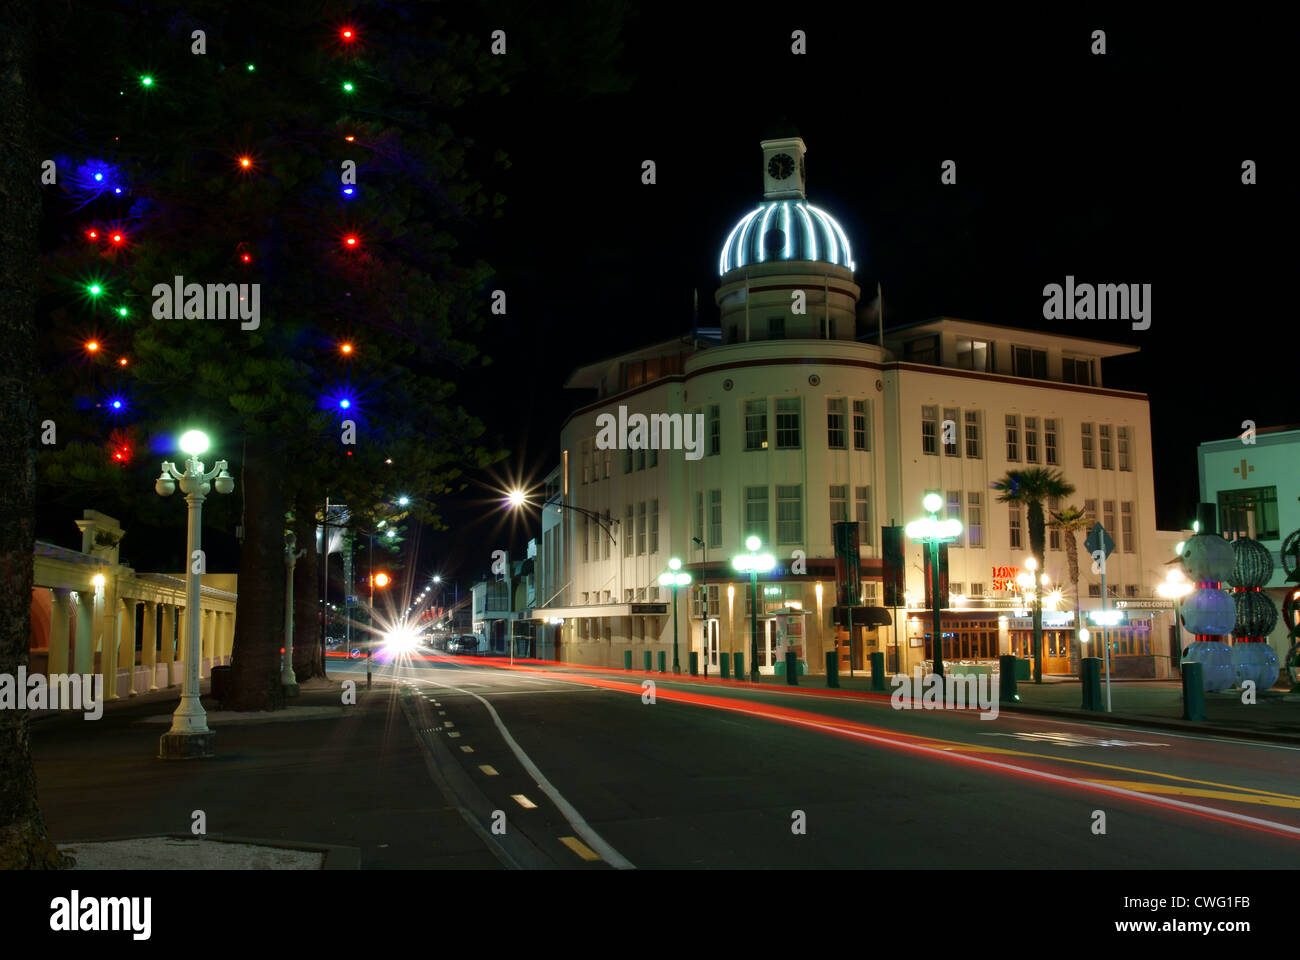 Napier at night showing The Dome on Marine Parade, Napier, Hawkes Bay, New Zealand Stock Photo